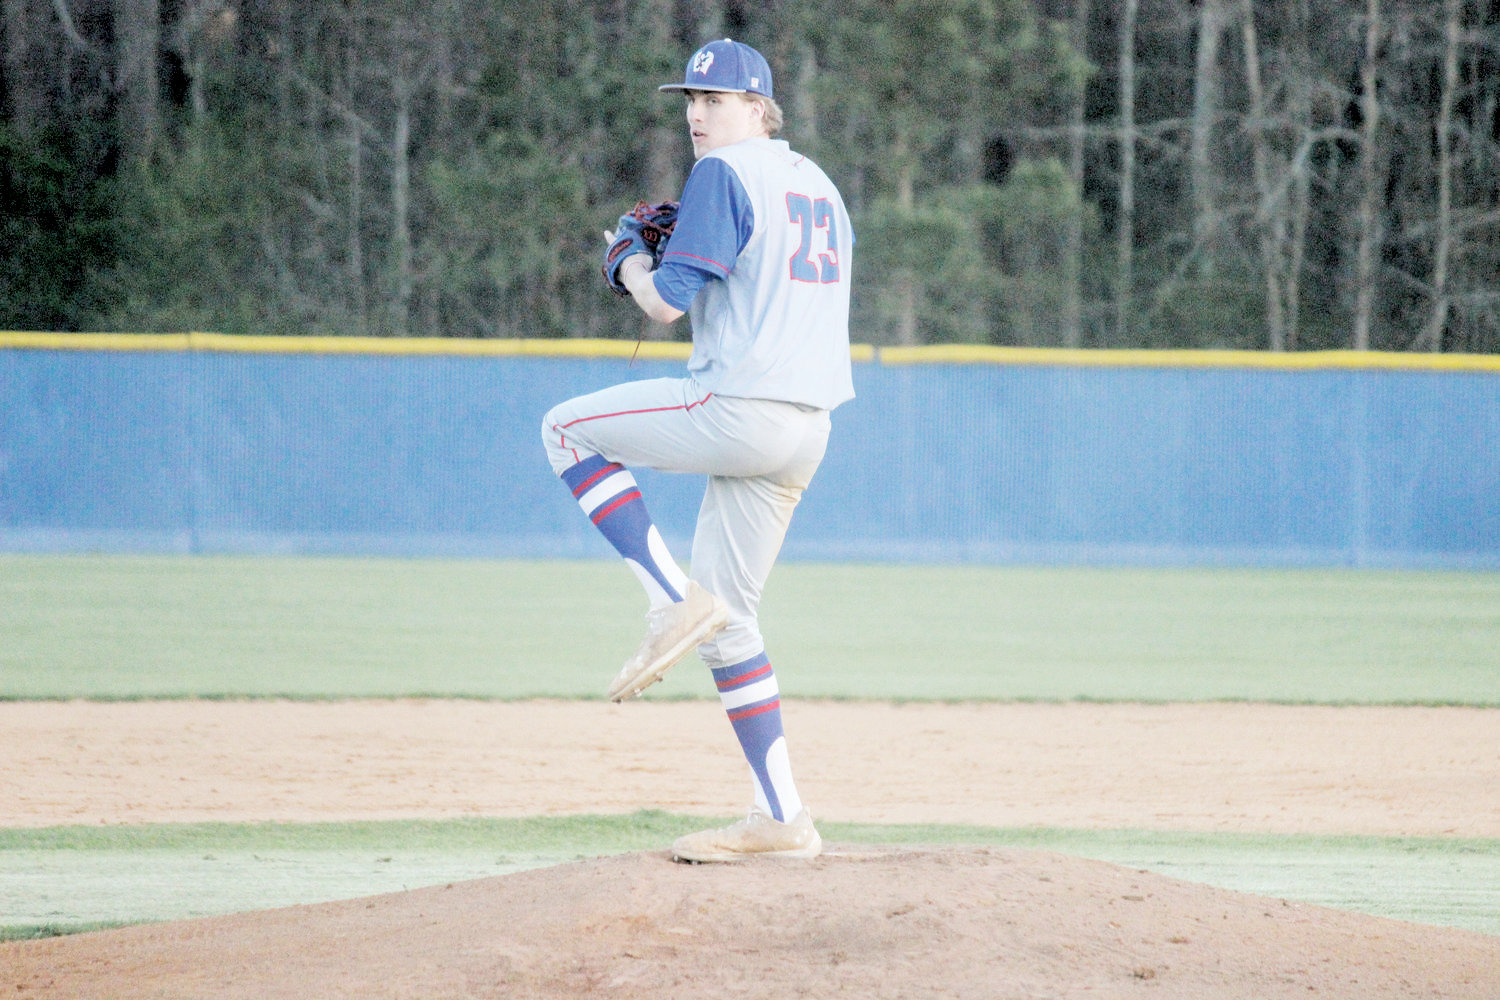 Bradley Wilson was named the Record Pitcher of the Year. Wilson helped lead Western Harnett to a Tri-County Conference tournamnet championship, and is one of the Eagles' six seniors set to play in college as he's signed to pitch at ECU next year.